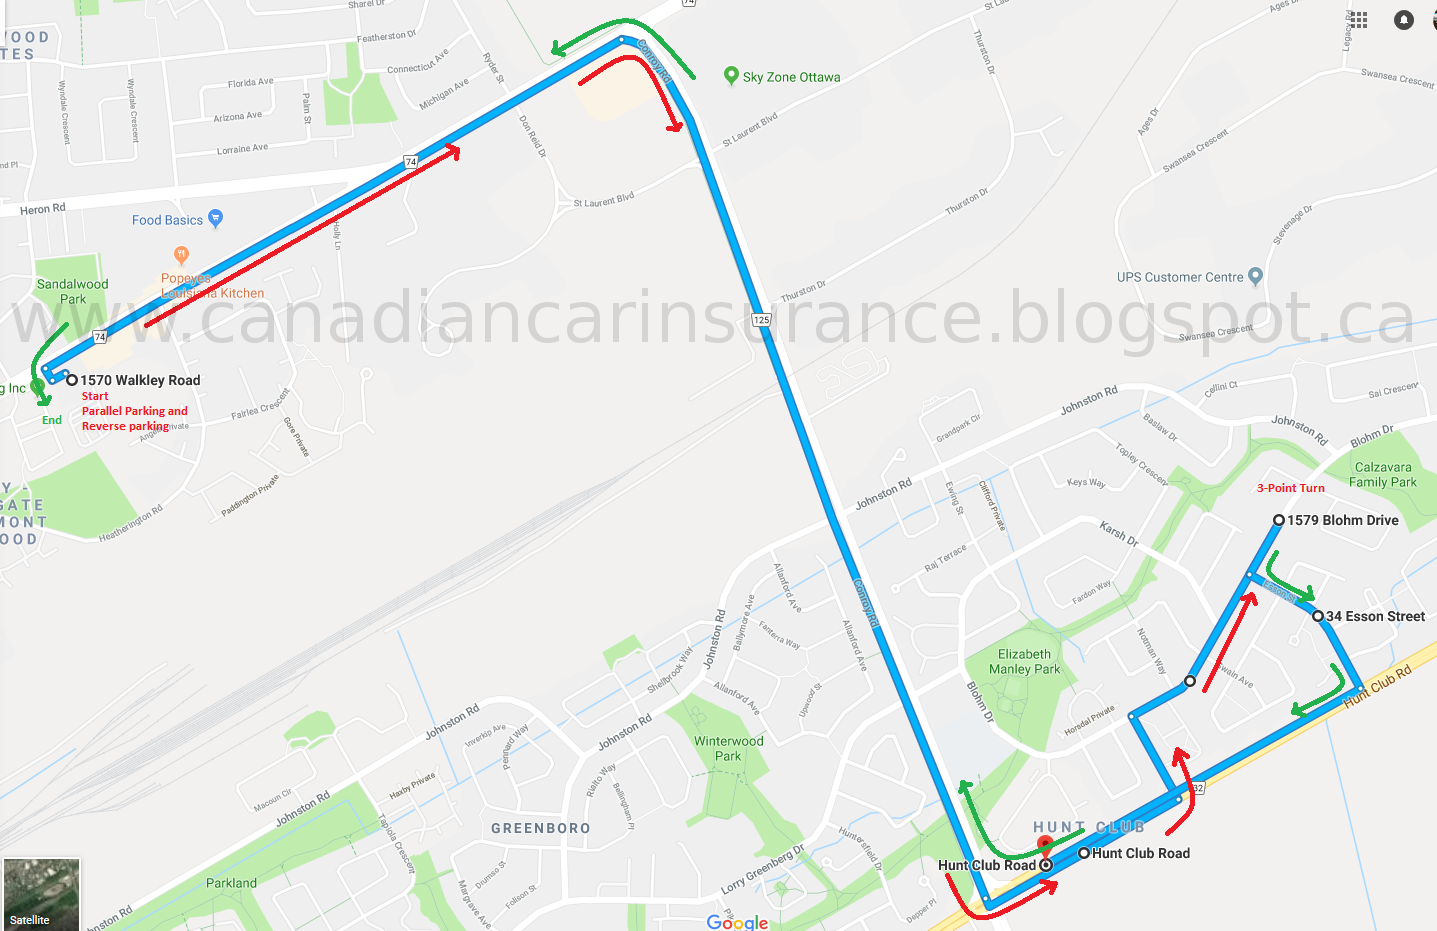 The Easiest Places To Pass Your G1 And G2 Road Tests - Narcity